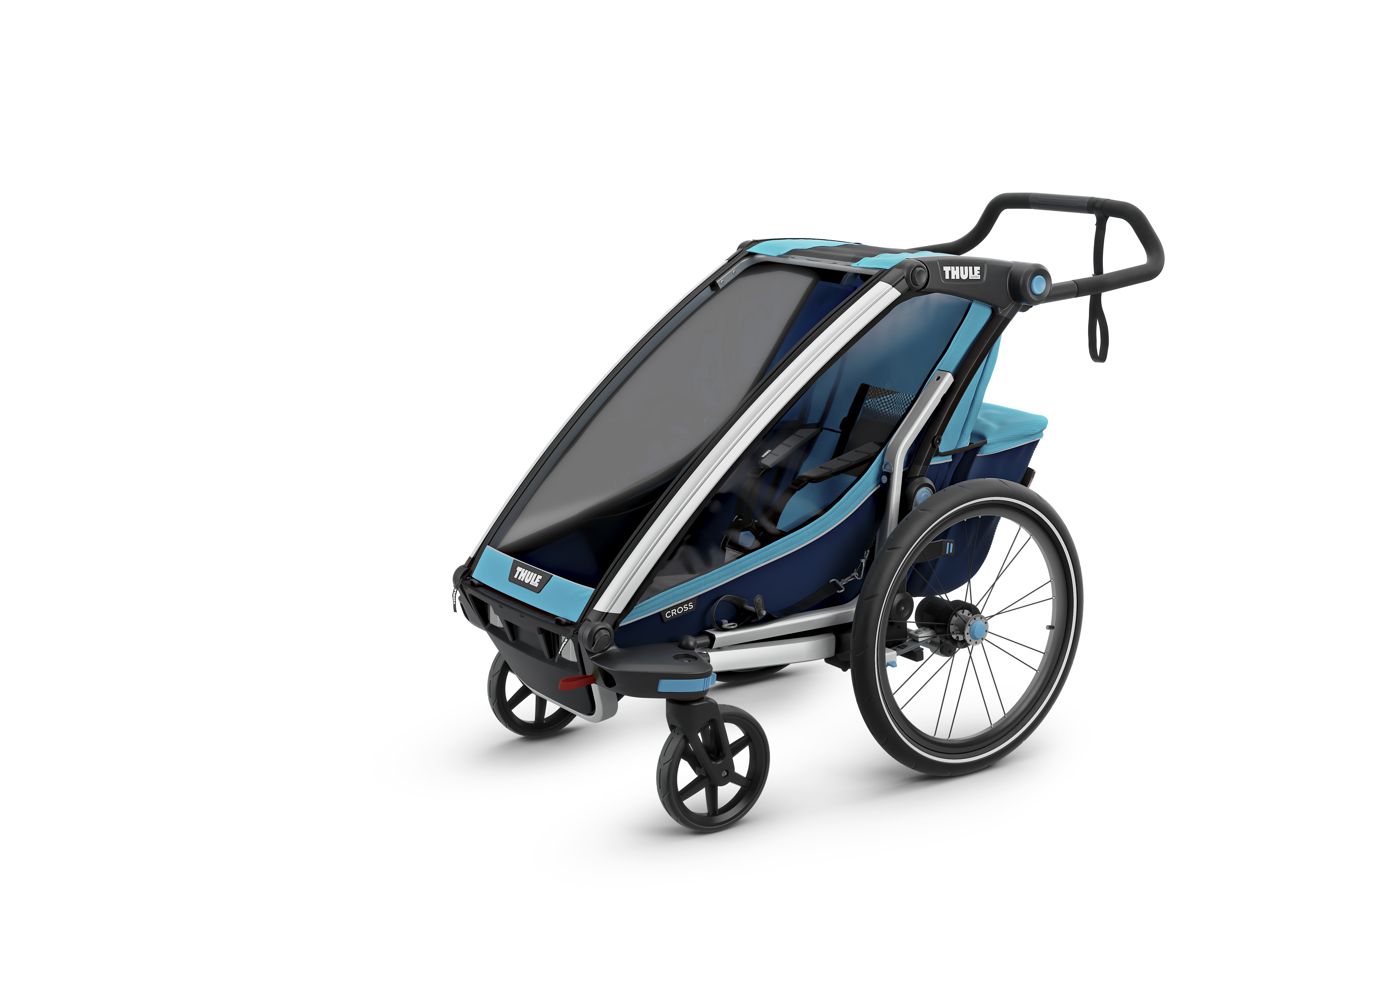 Thule_Chariot_Cross1_ThuleBlue_Strolling_ISO_10202001